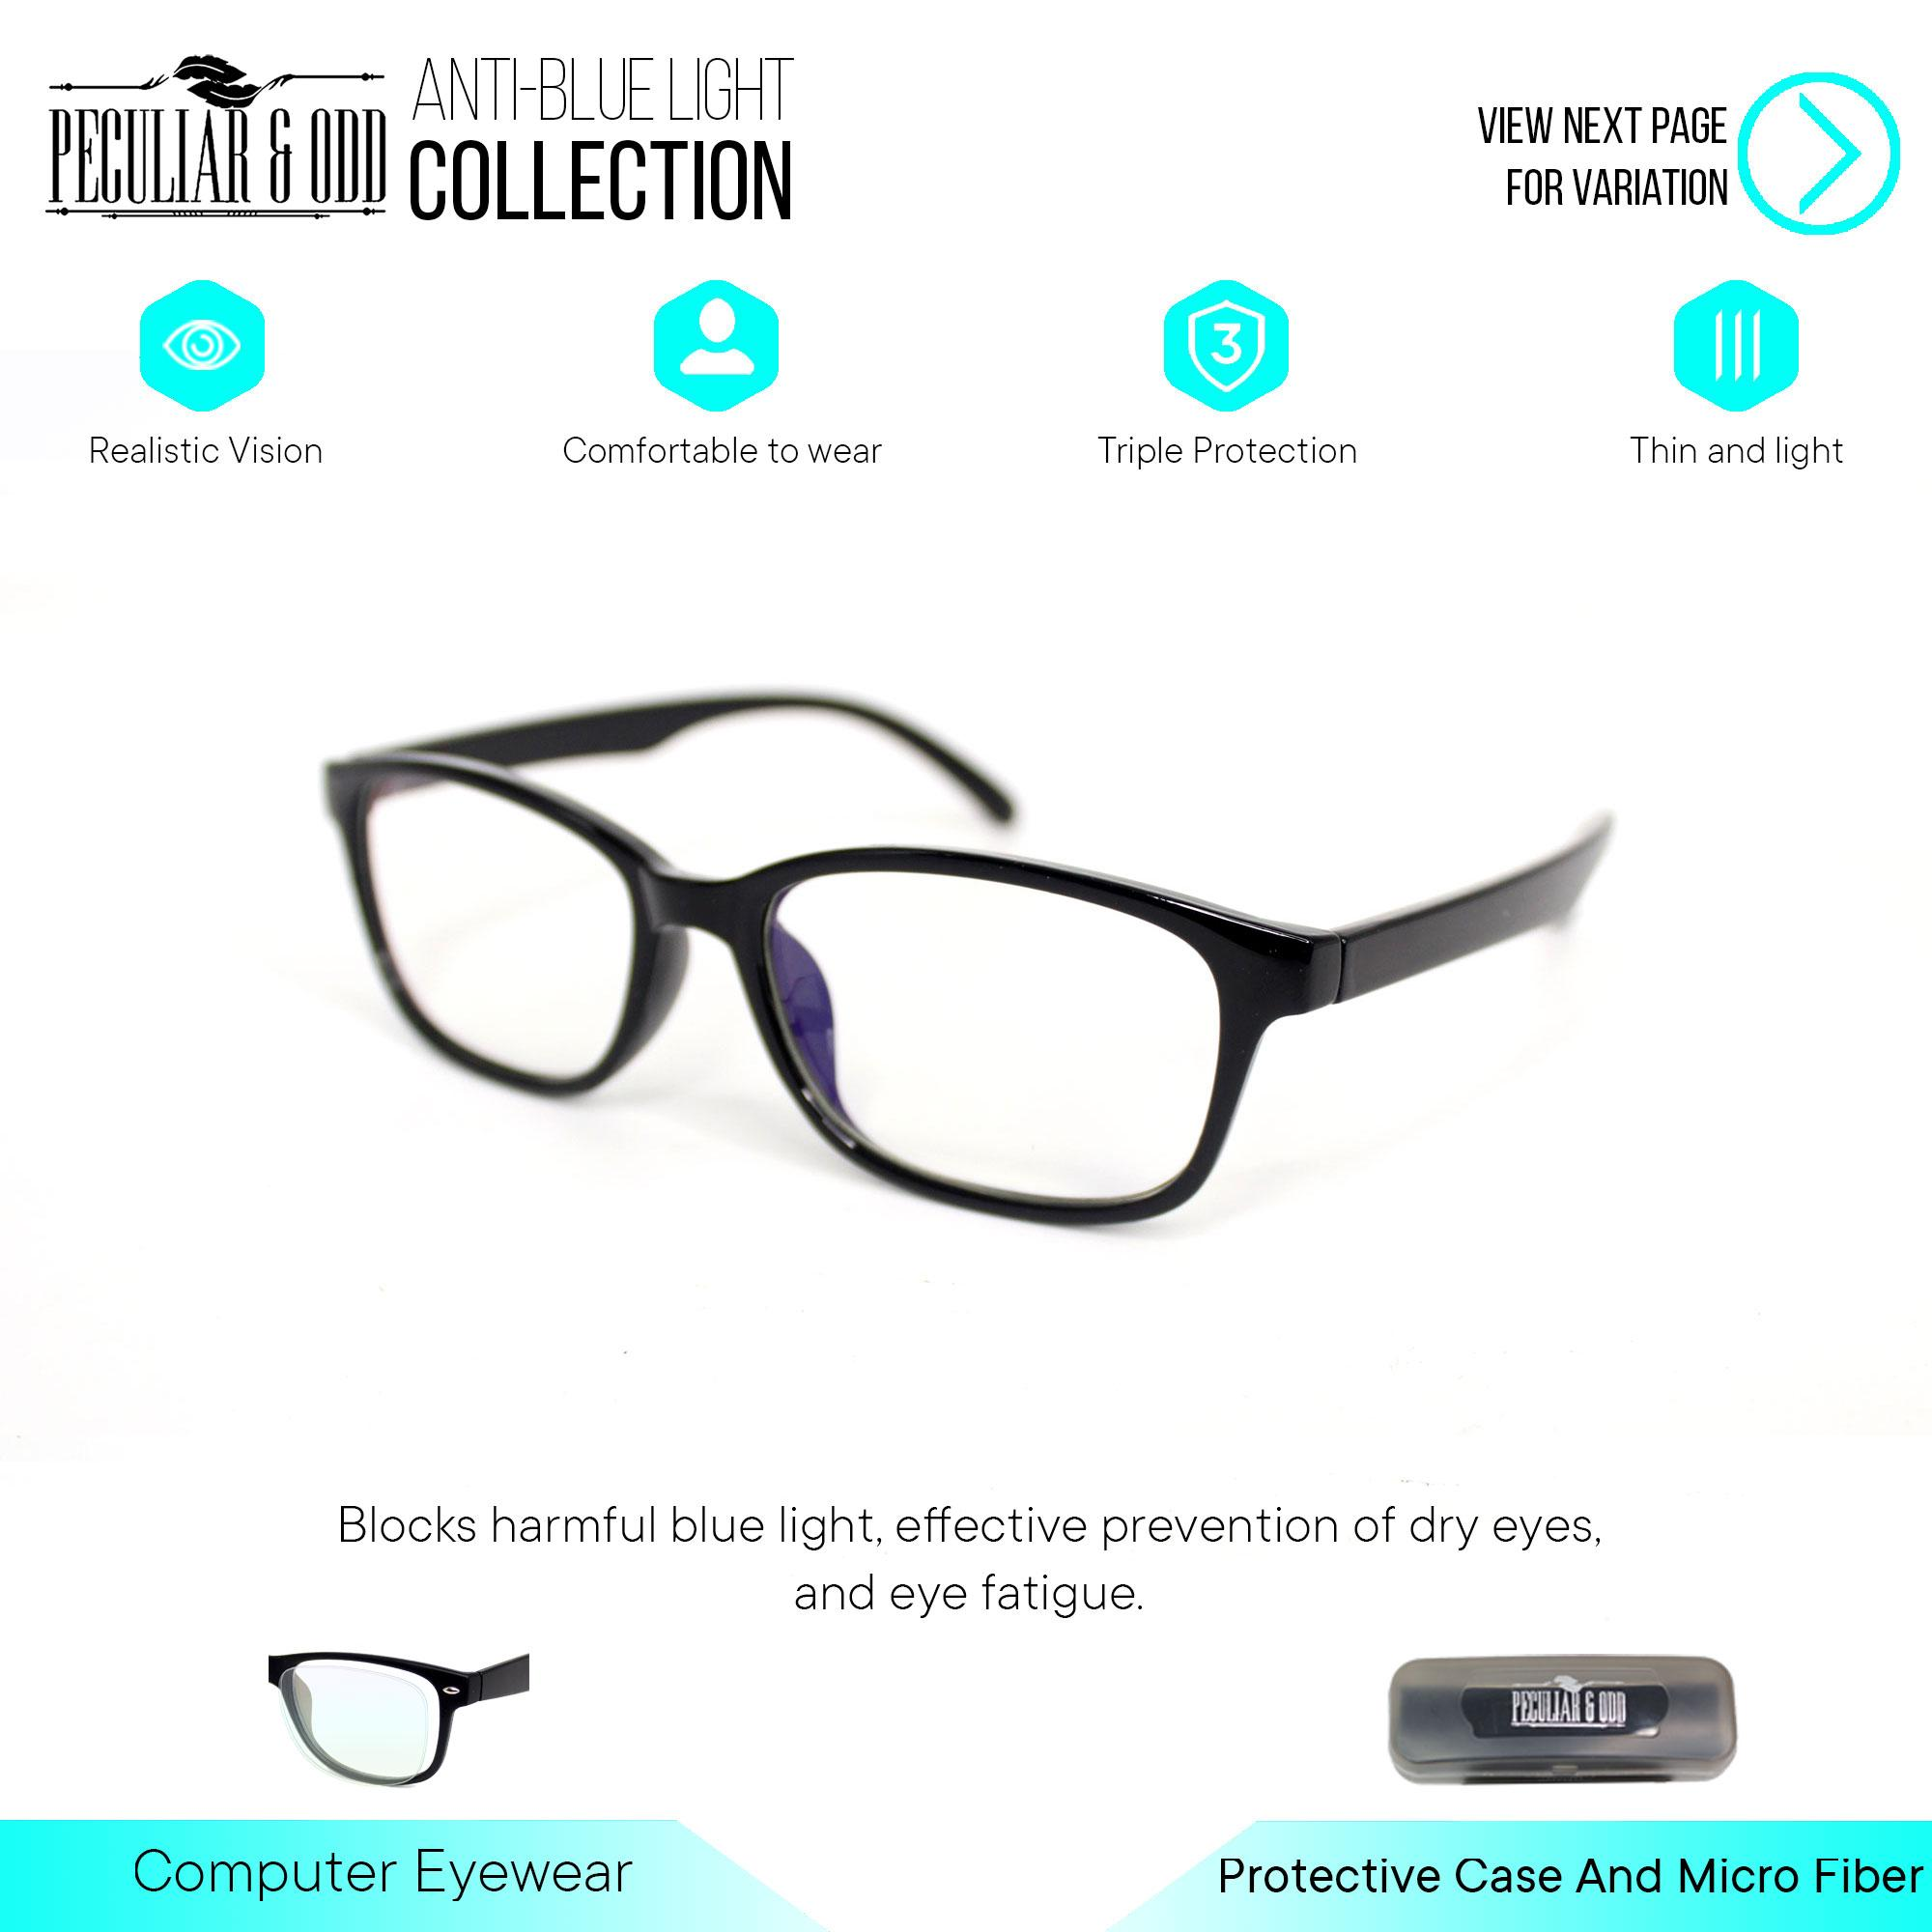 Eyeglasses Frame Men Women Decoration Glasses For Man Women Large Thick Pc Spectacles Black Vintage Retro Big High Resilience Apparel Accessories Men's Eyewear Frames